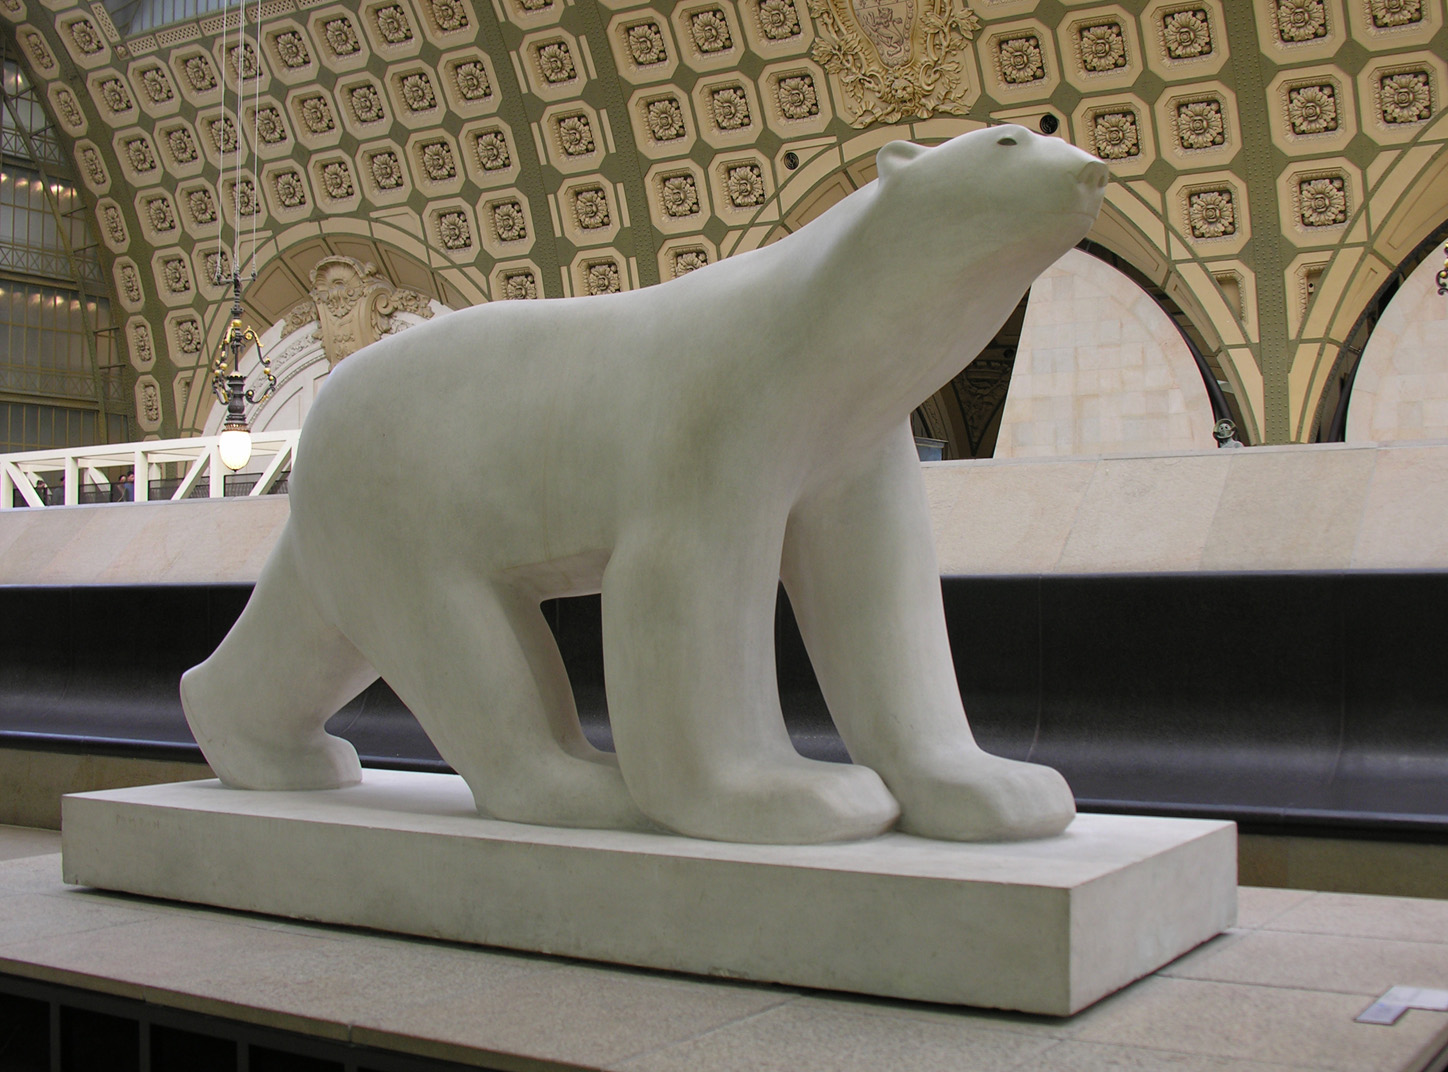 Francois Pomnons White Polar Bear at Musee de Orsay in Paris